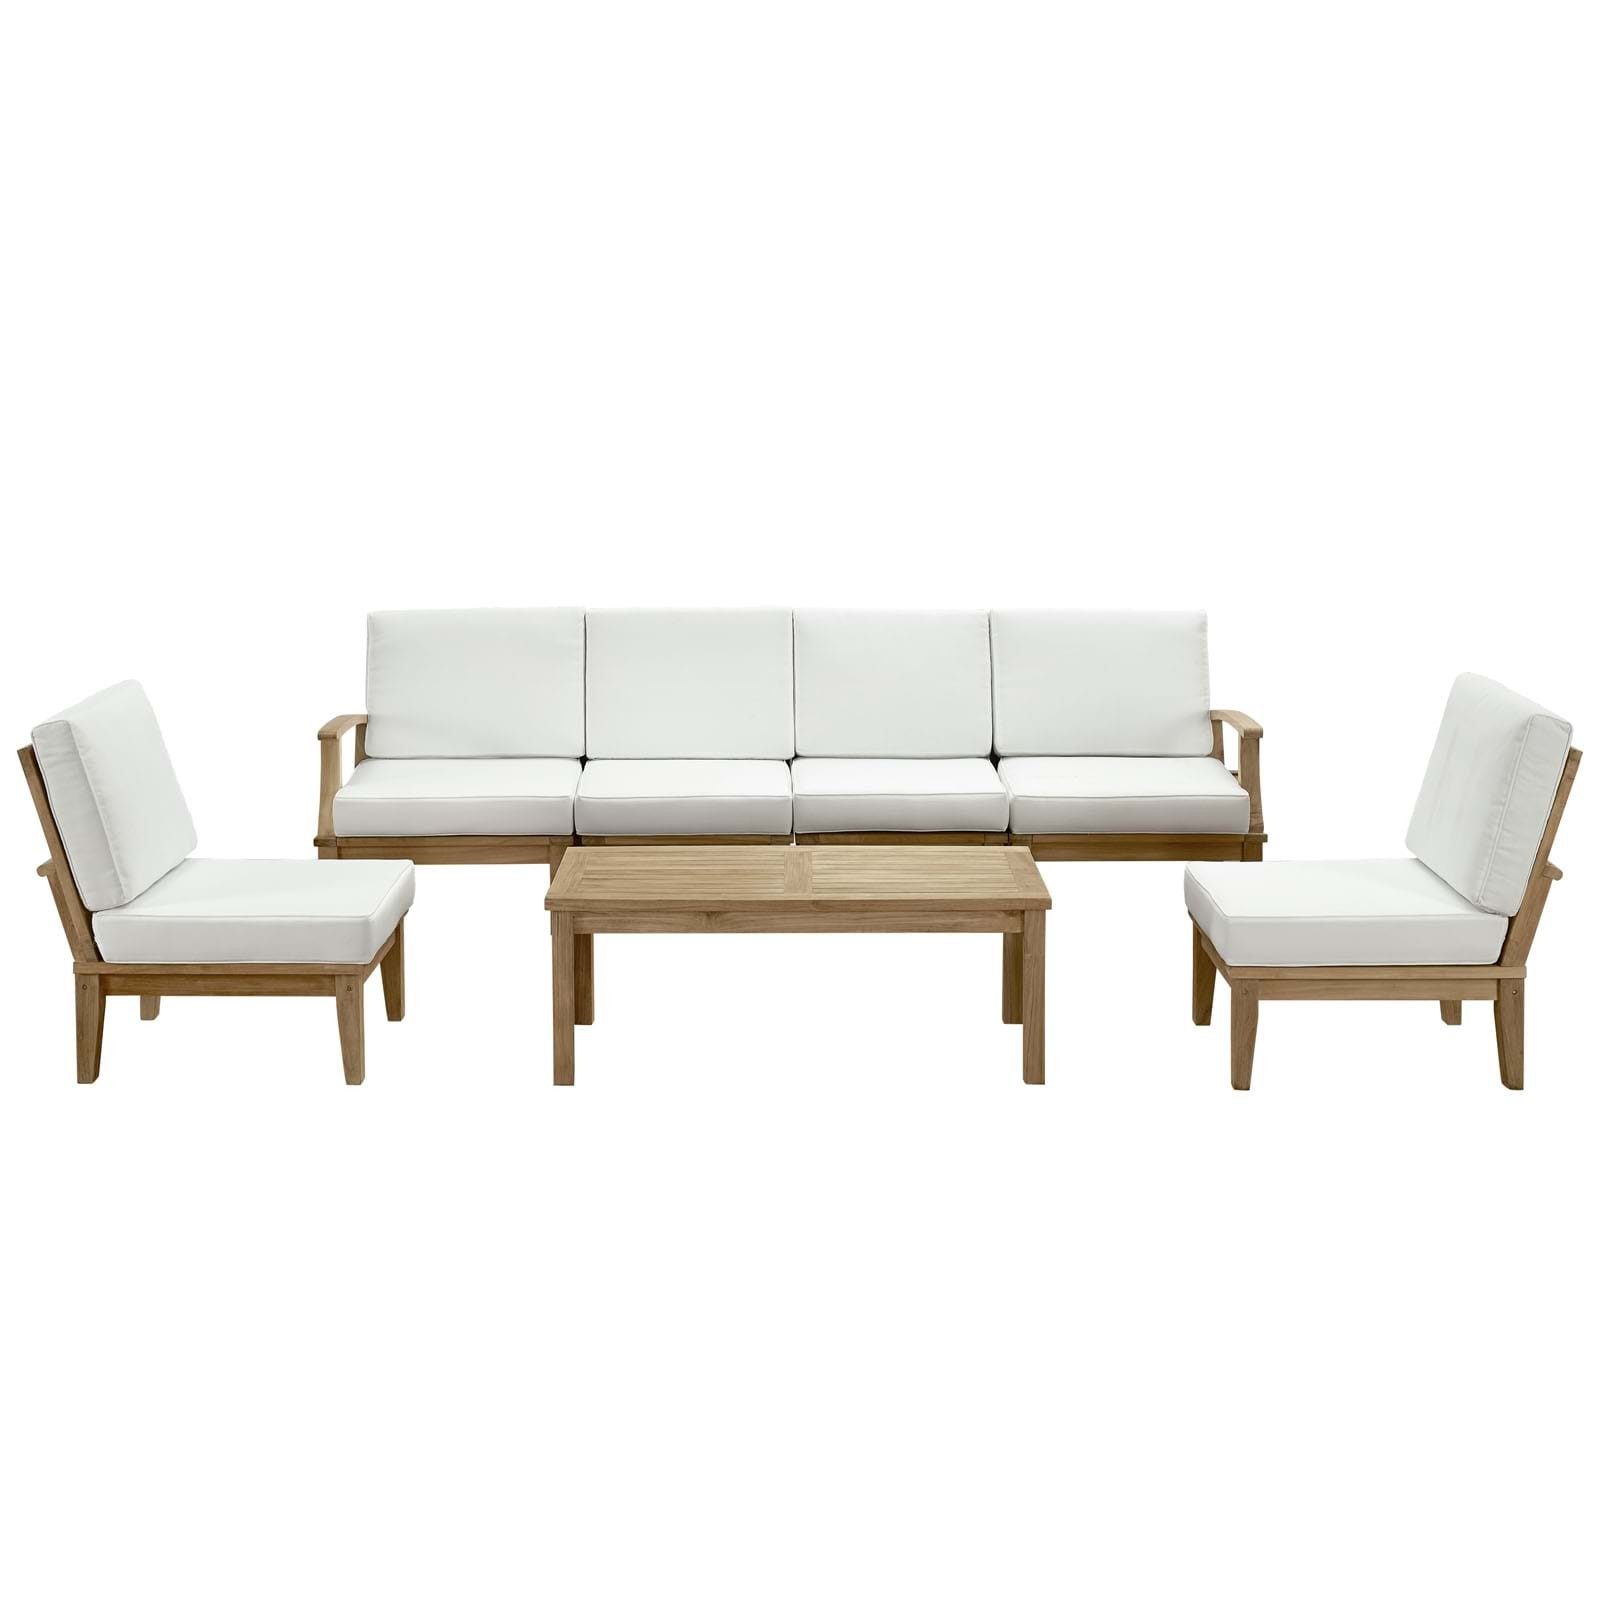 Marina 7 Piece Outdoor Patio Teak Sofa Set